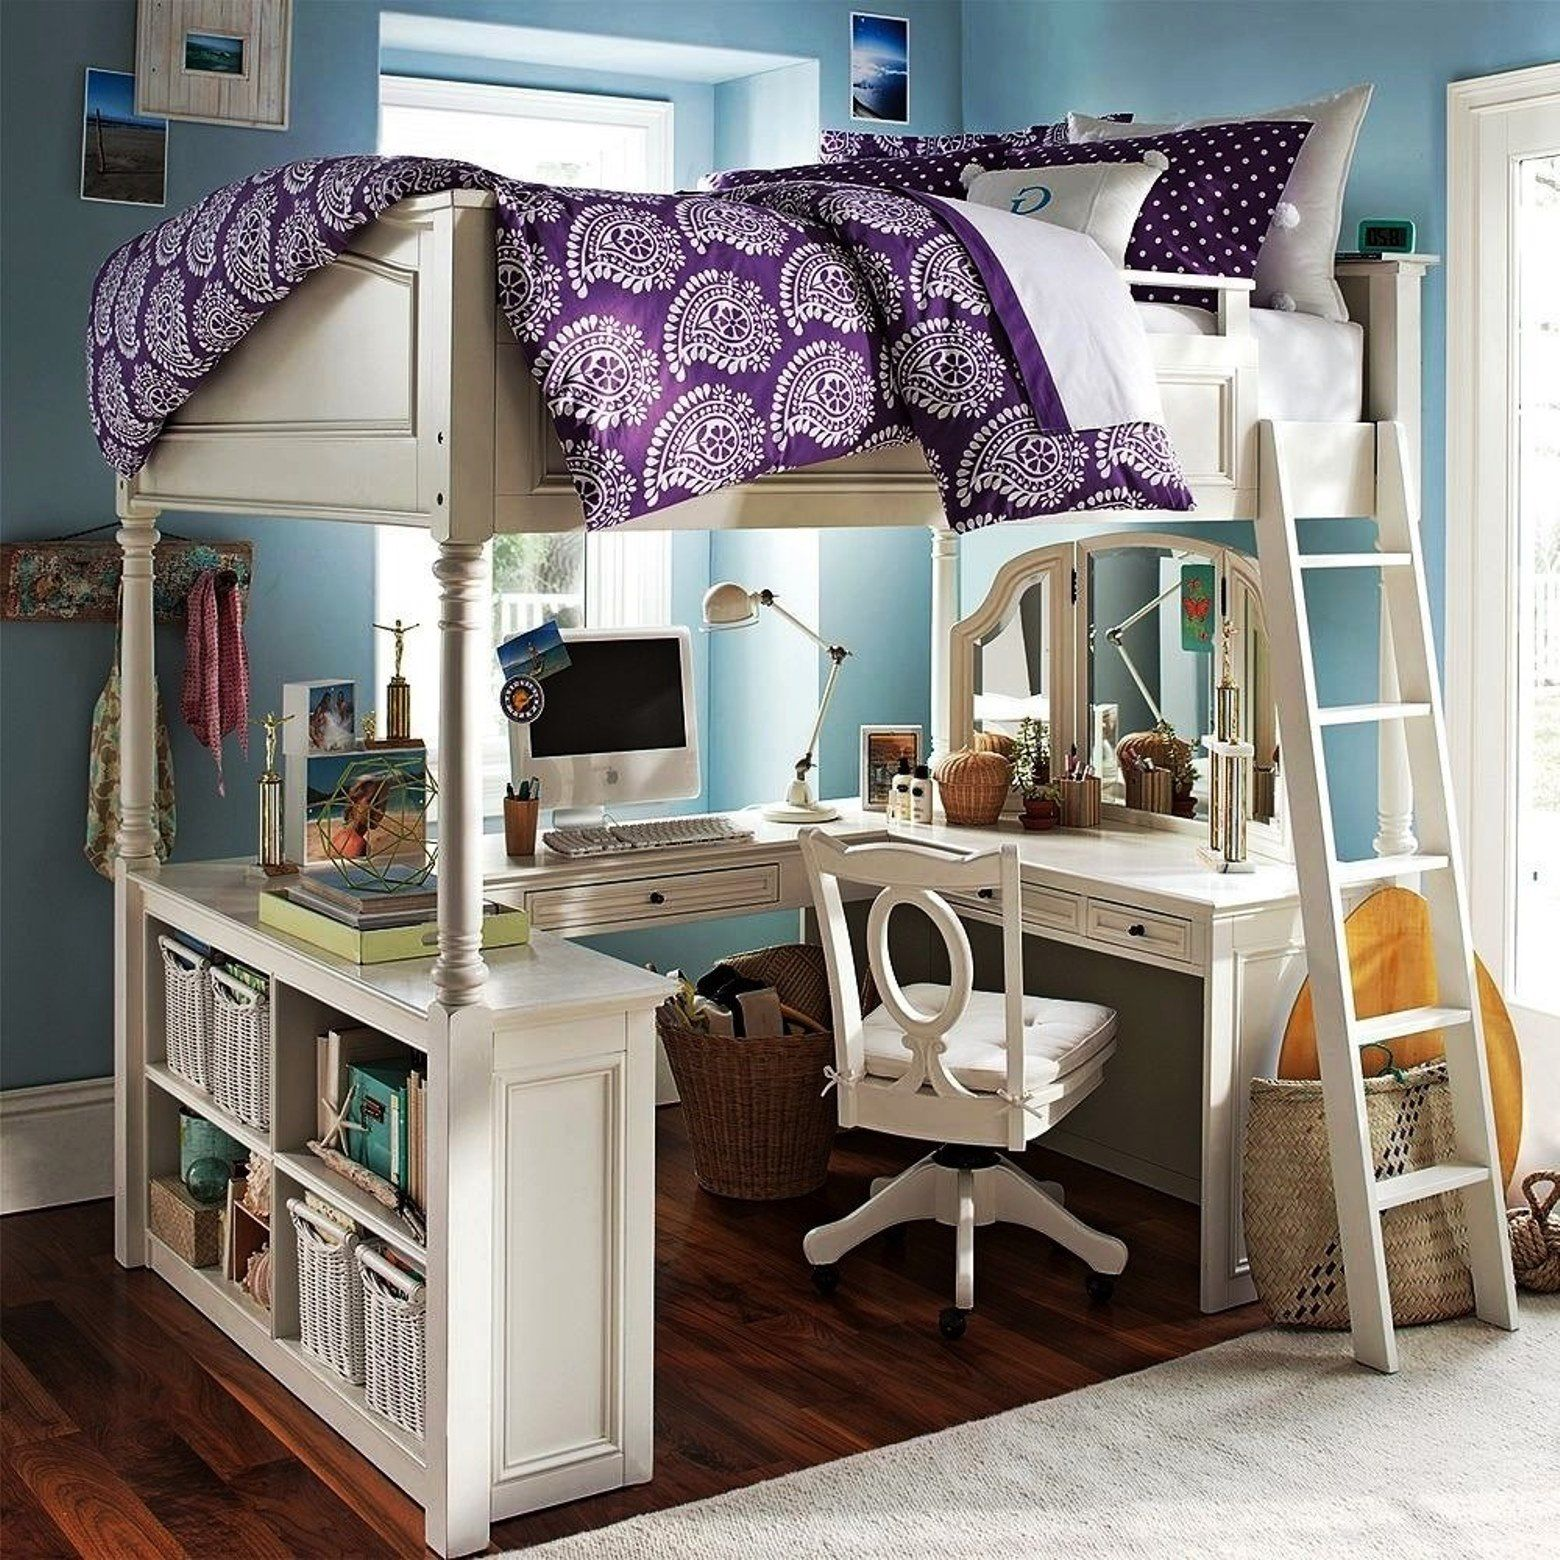 Double Bunk Bed With Desk Pin By Shareen Linton On Alina Pinterest Bed With Desk